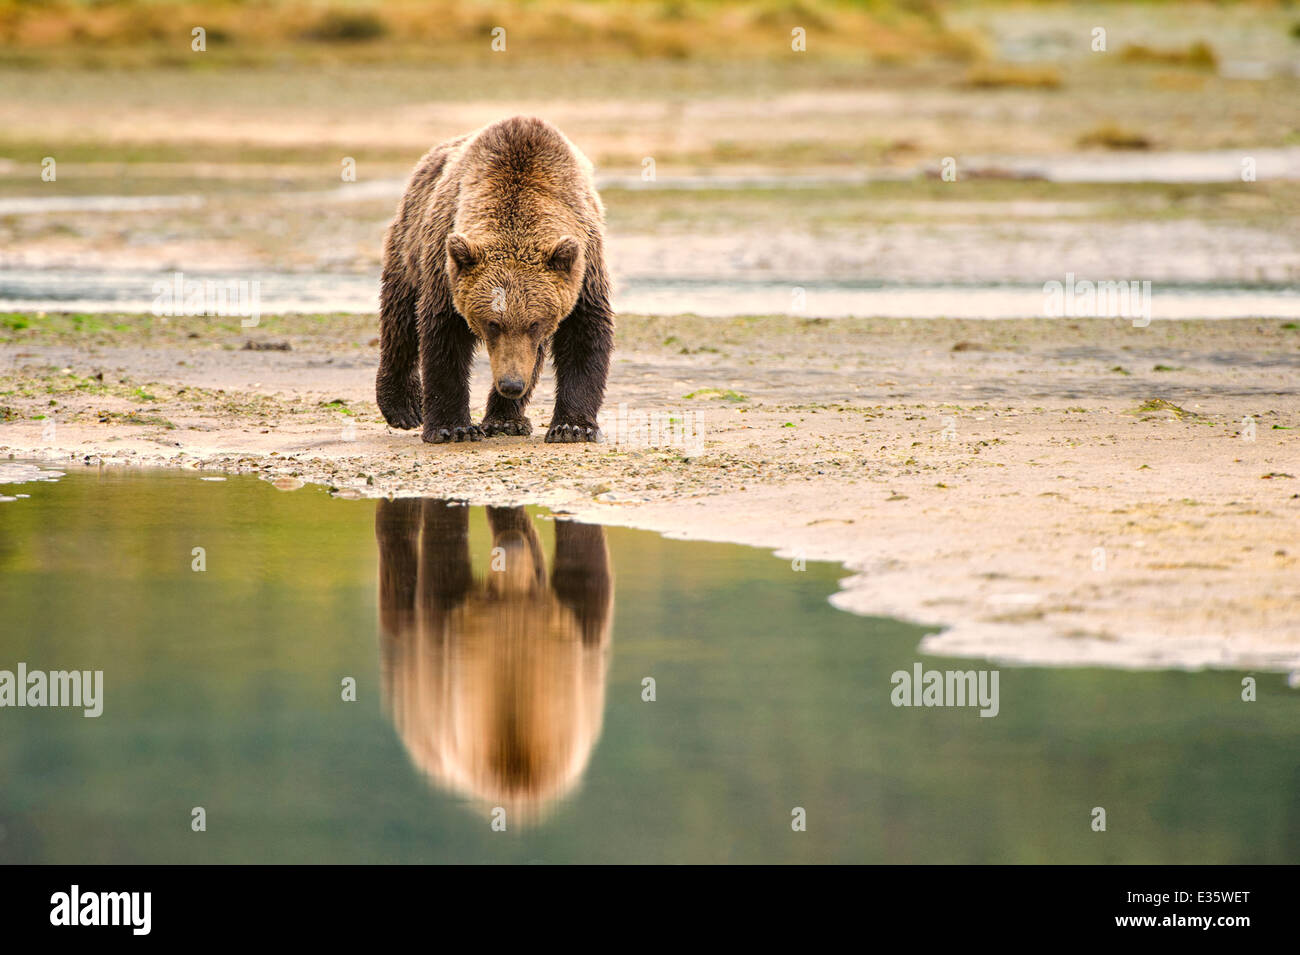 A coastal brown bear / grizzly bear walks a meandering shoreline in search of food scraps in Katmai National Park, Stock Photo